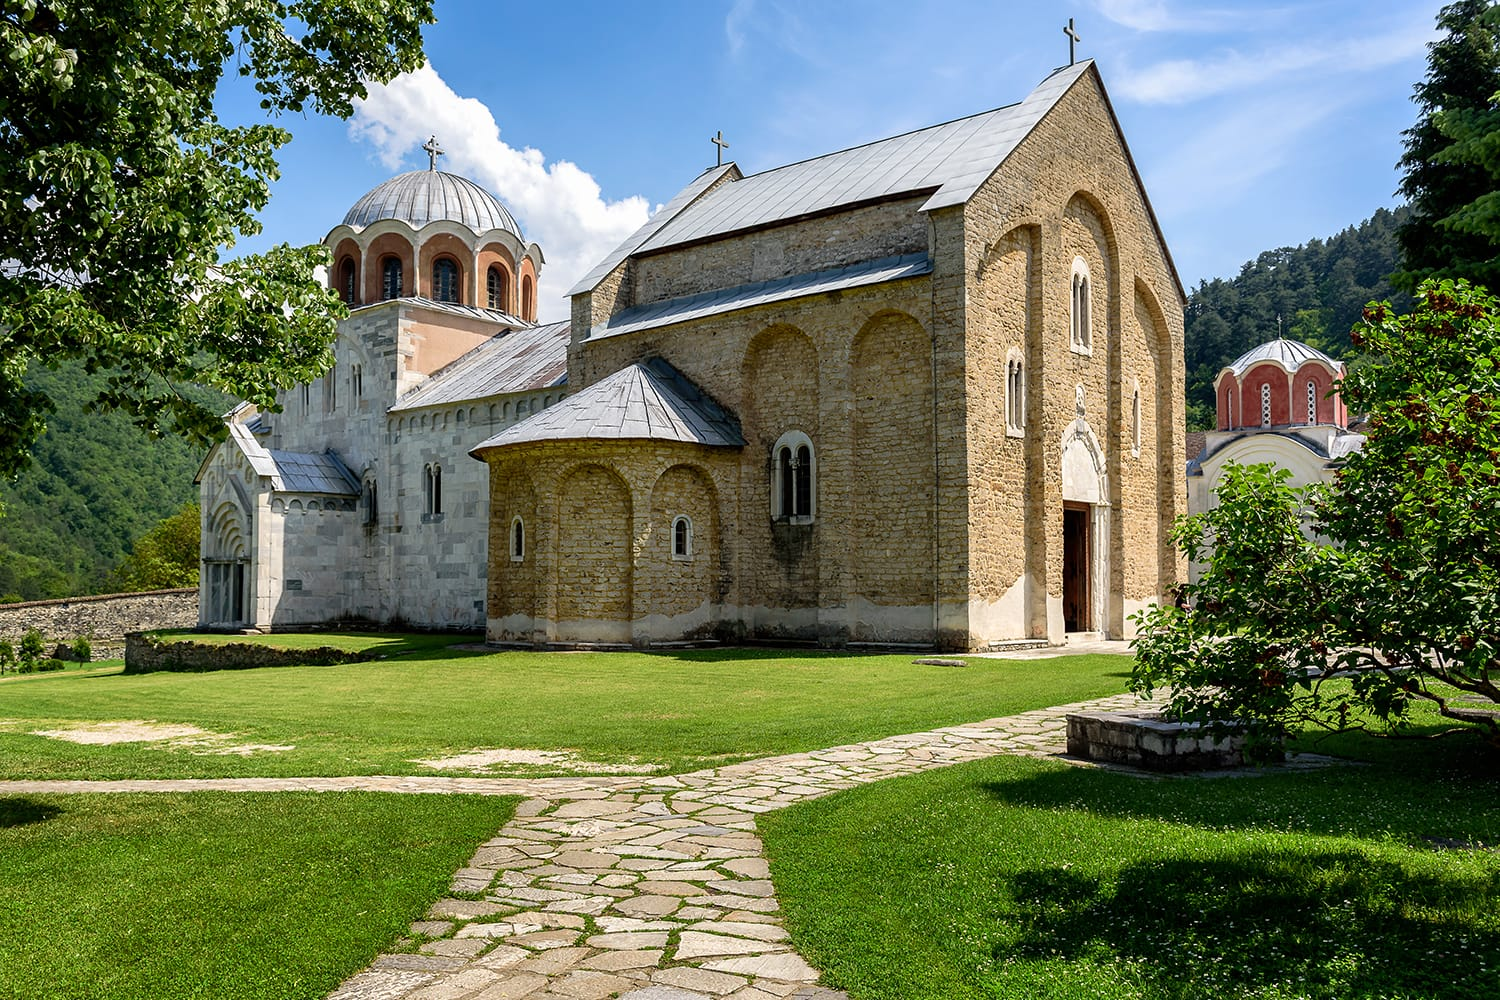 Studenica monastery, 12th-century Serbian orthodox monastery located near city of Kraljevo, Serbia